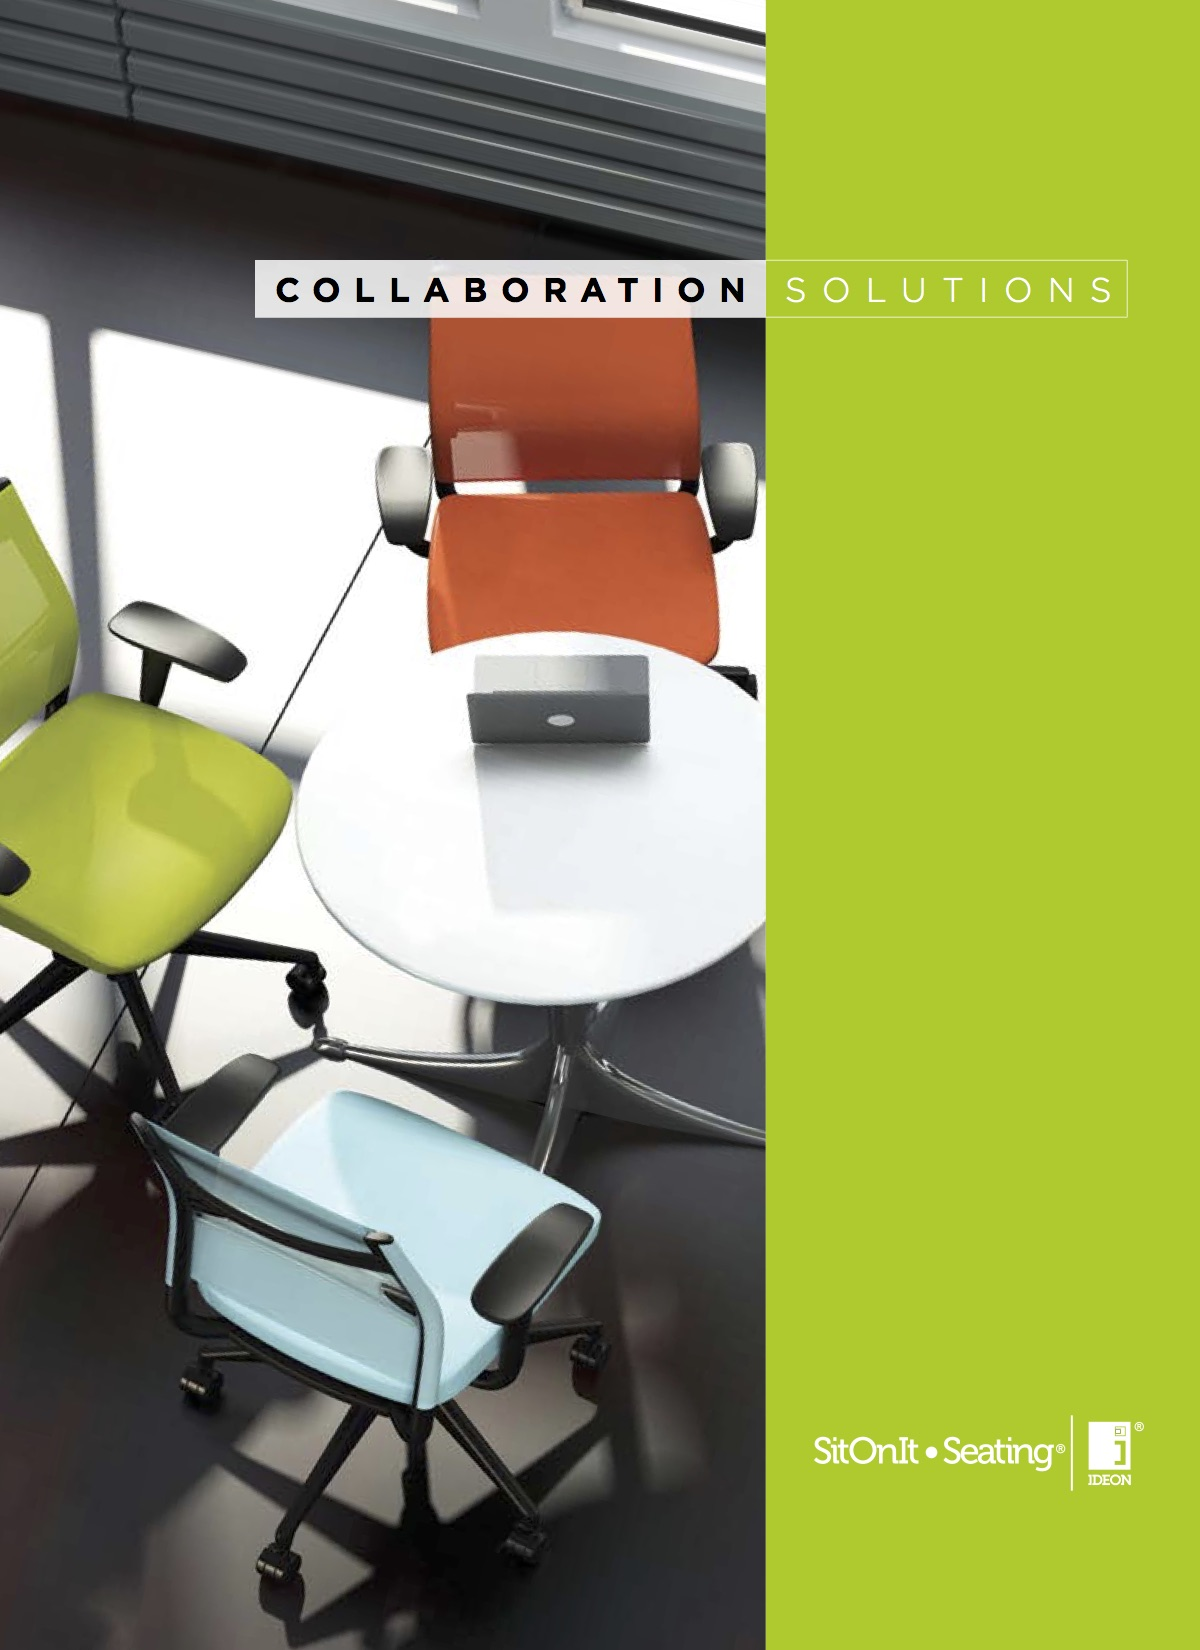 Collaboration Solutions FINAL